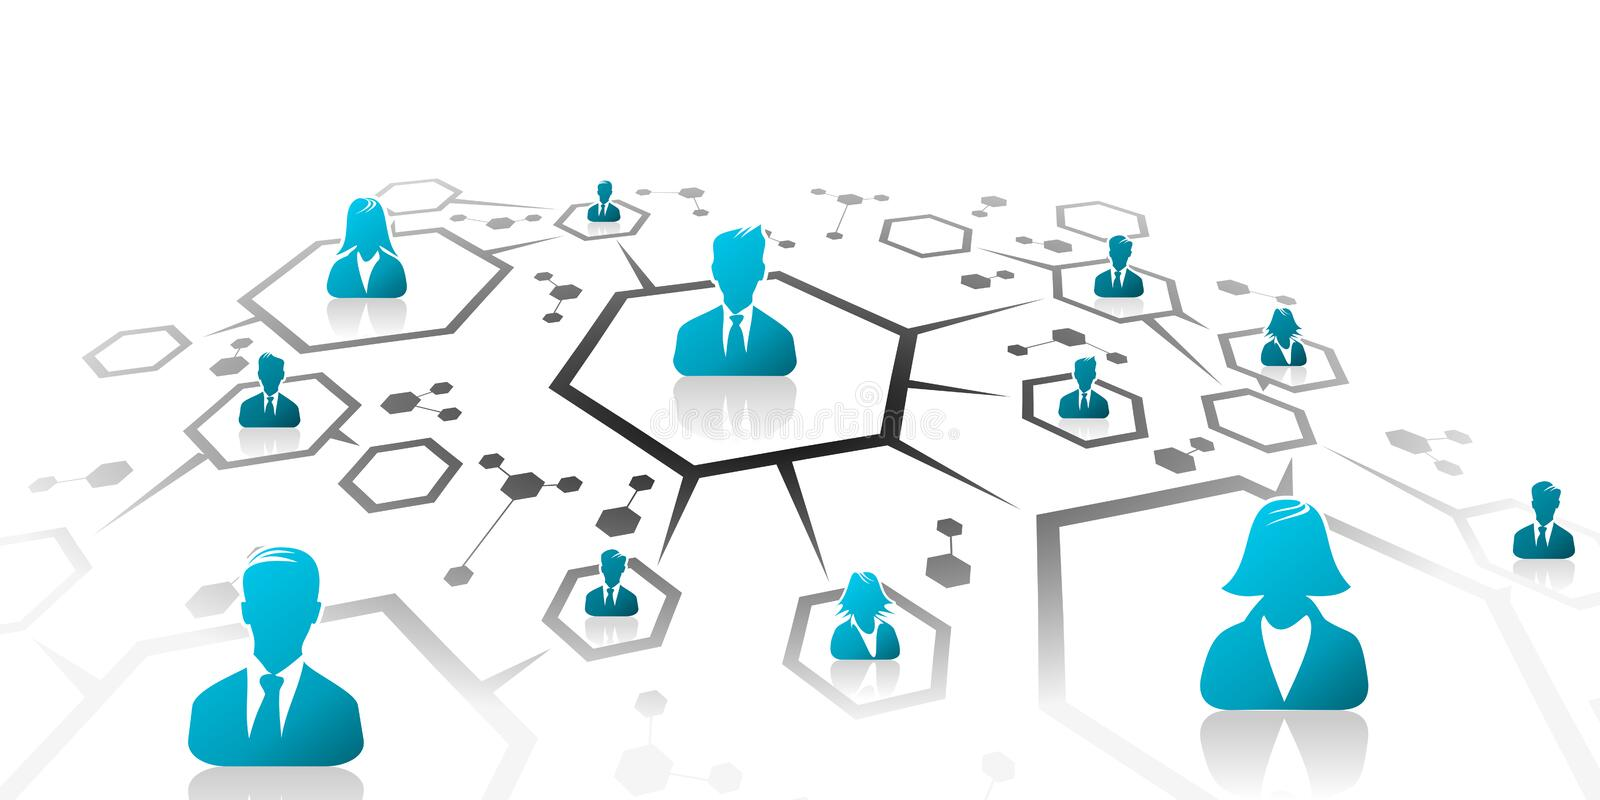 Business network. Abstract illustration of business network grid vector illustration